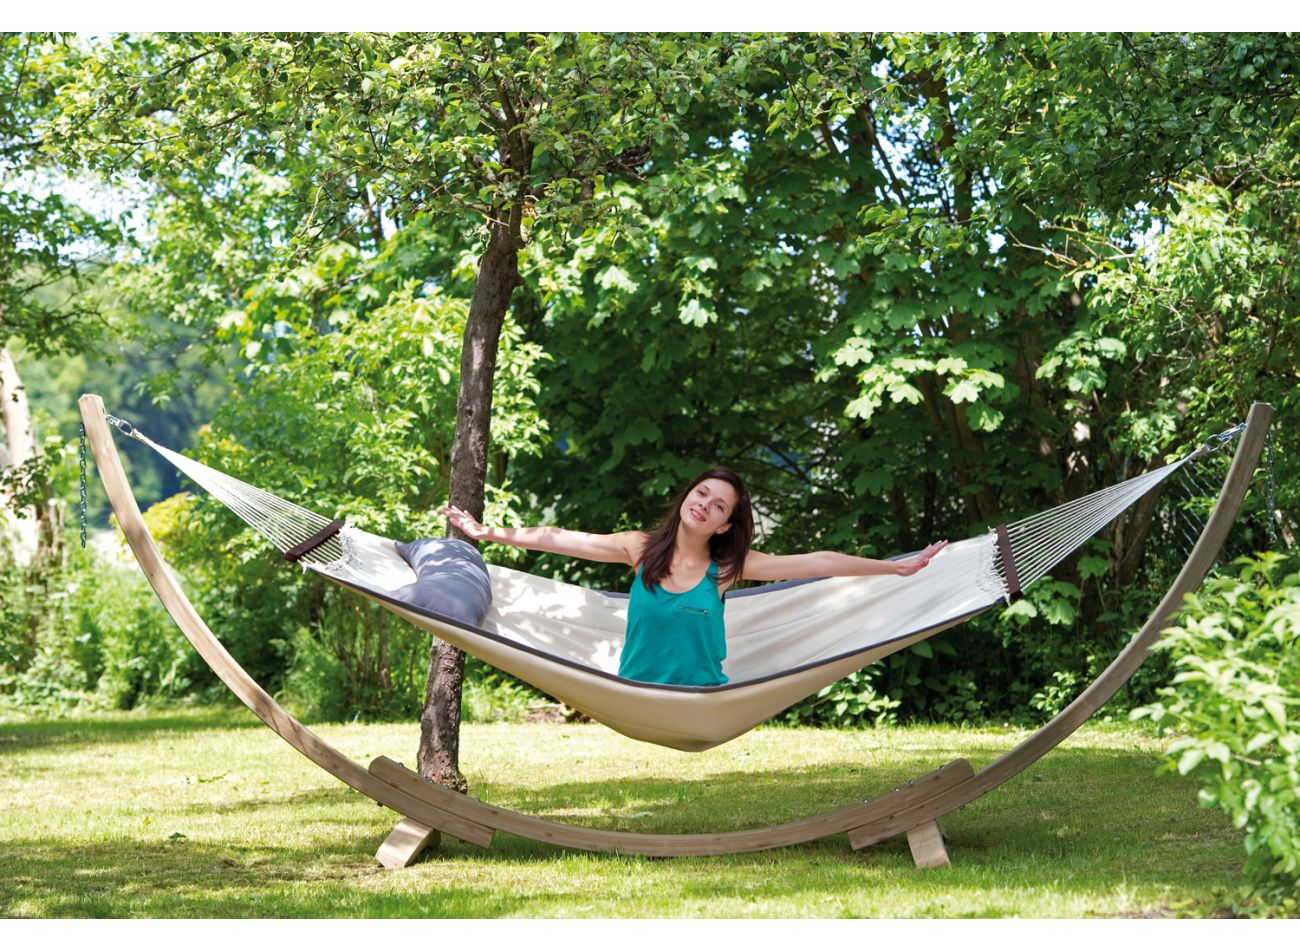 Hammock 2 Persons American Dream Sand